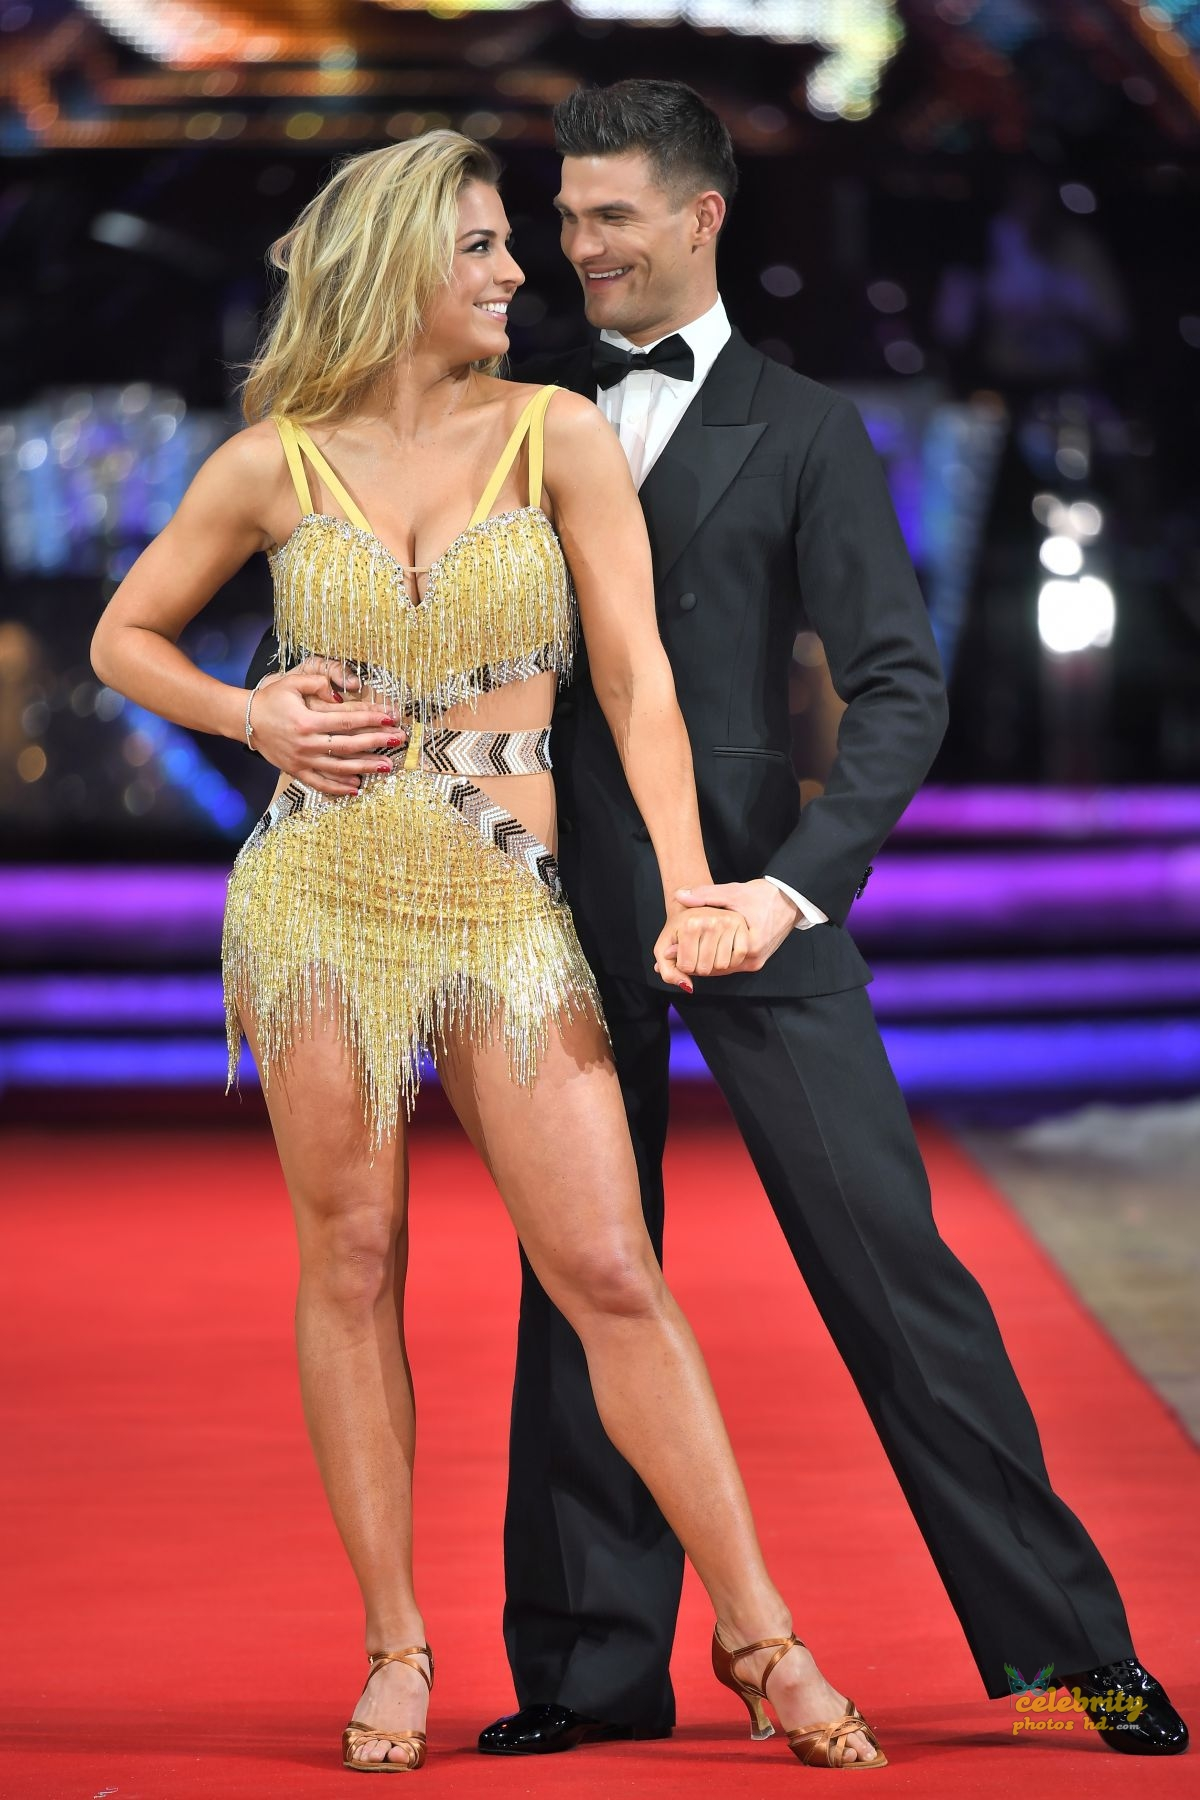 GEMMA ATKINSON at Strictly Come Dancing The Live Tour! Photocall in Birmingham (4)